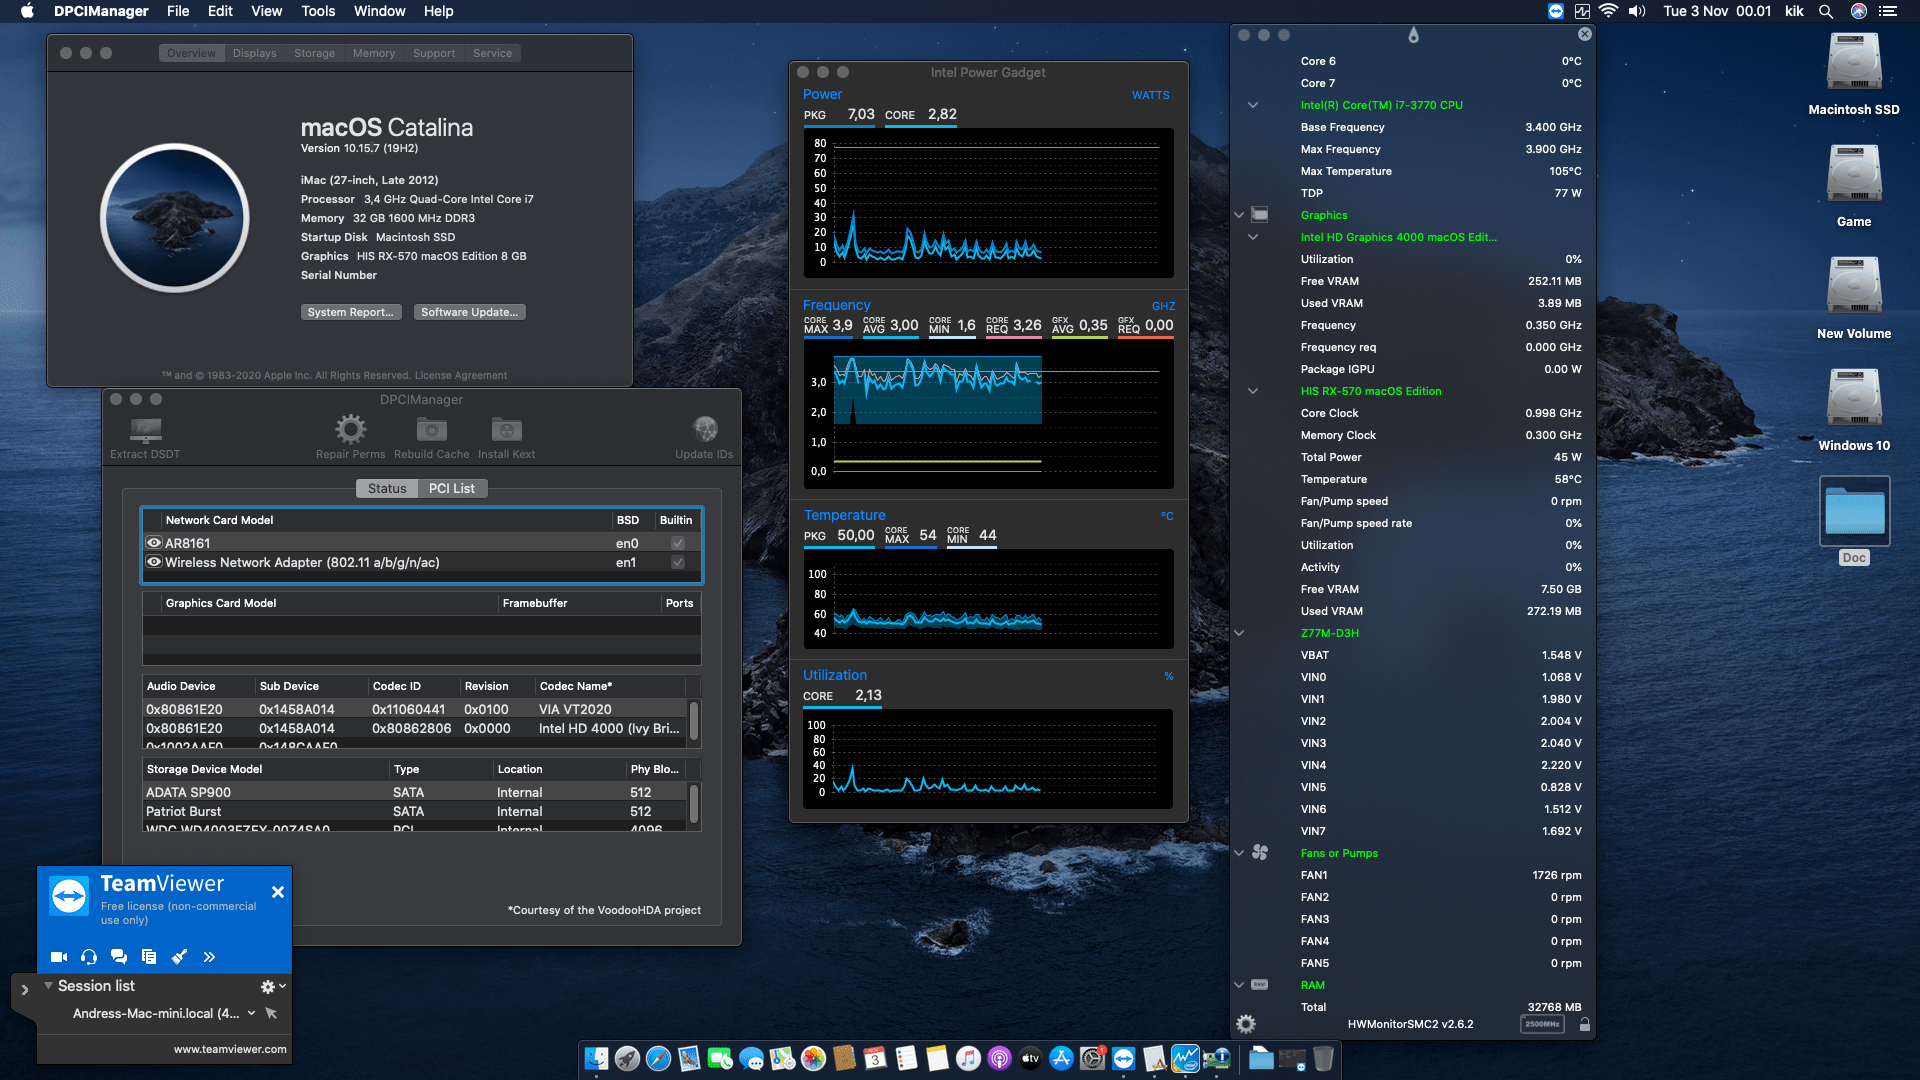 Success Hackintosh macOS Catalina 10.15.7 Build 19H2 in Gigabyte Z77M-D3H + Intel Core i7 3770 + HIS RX 570